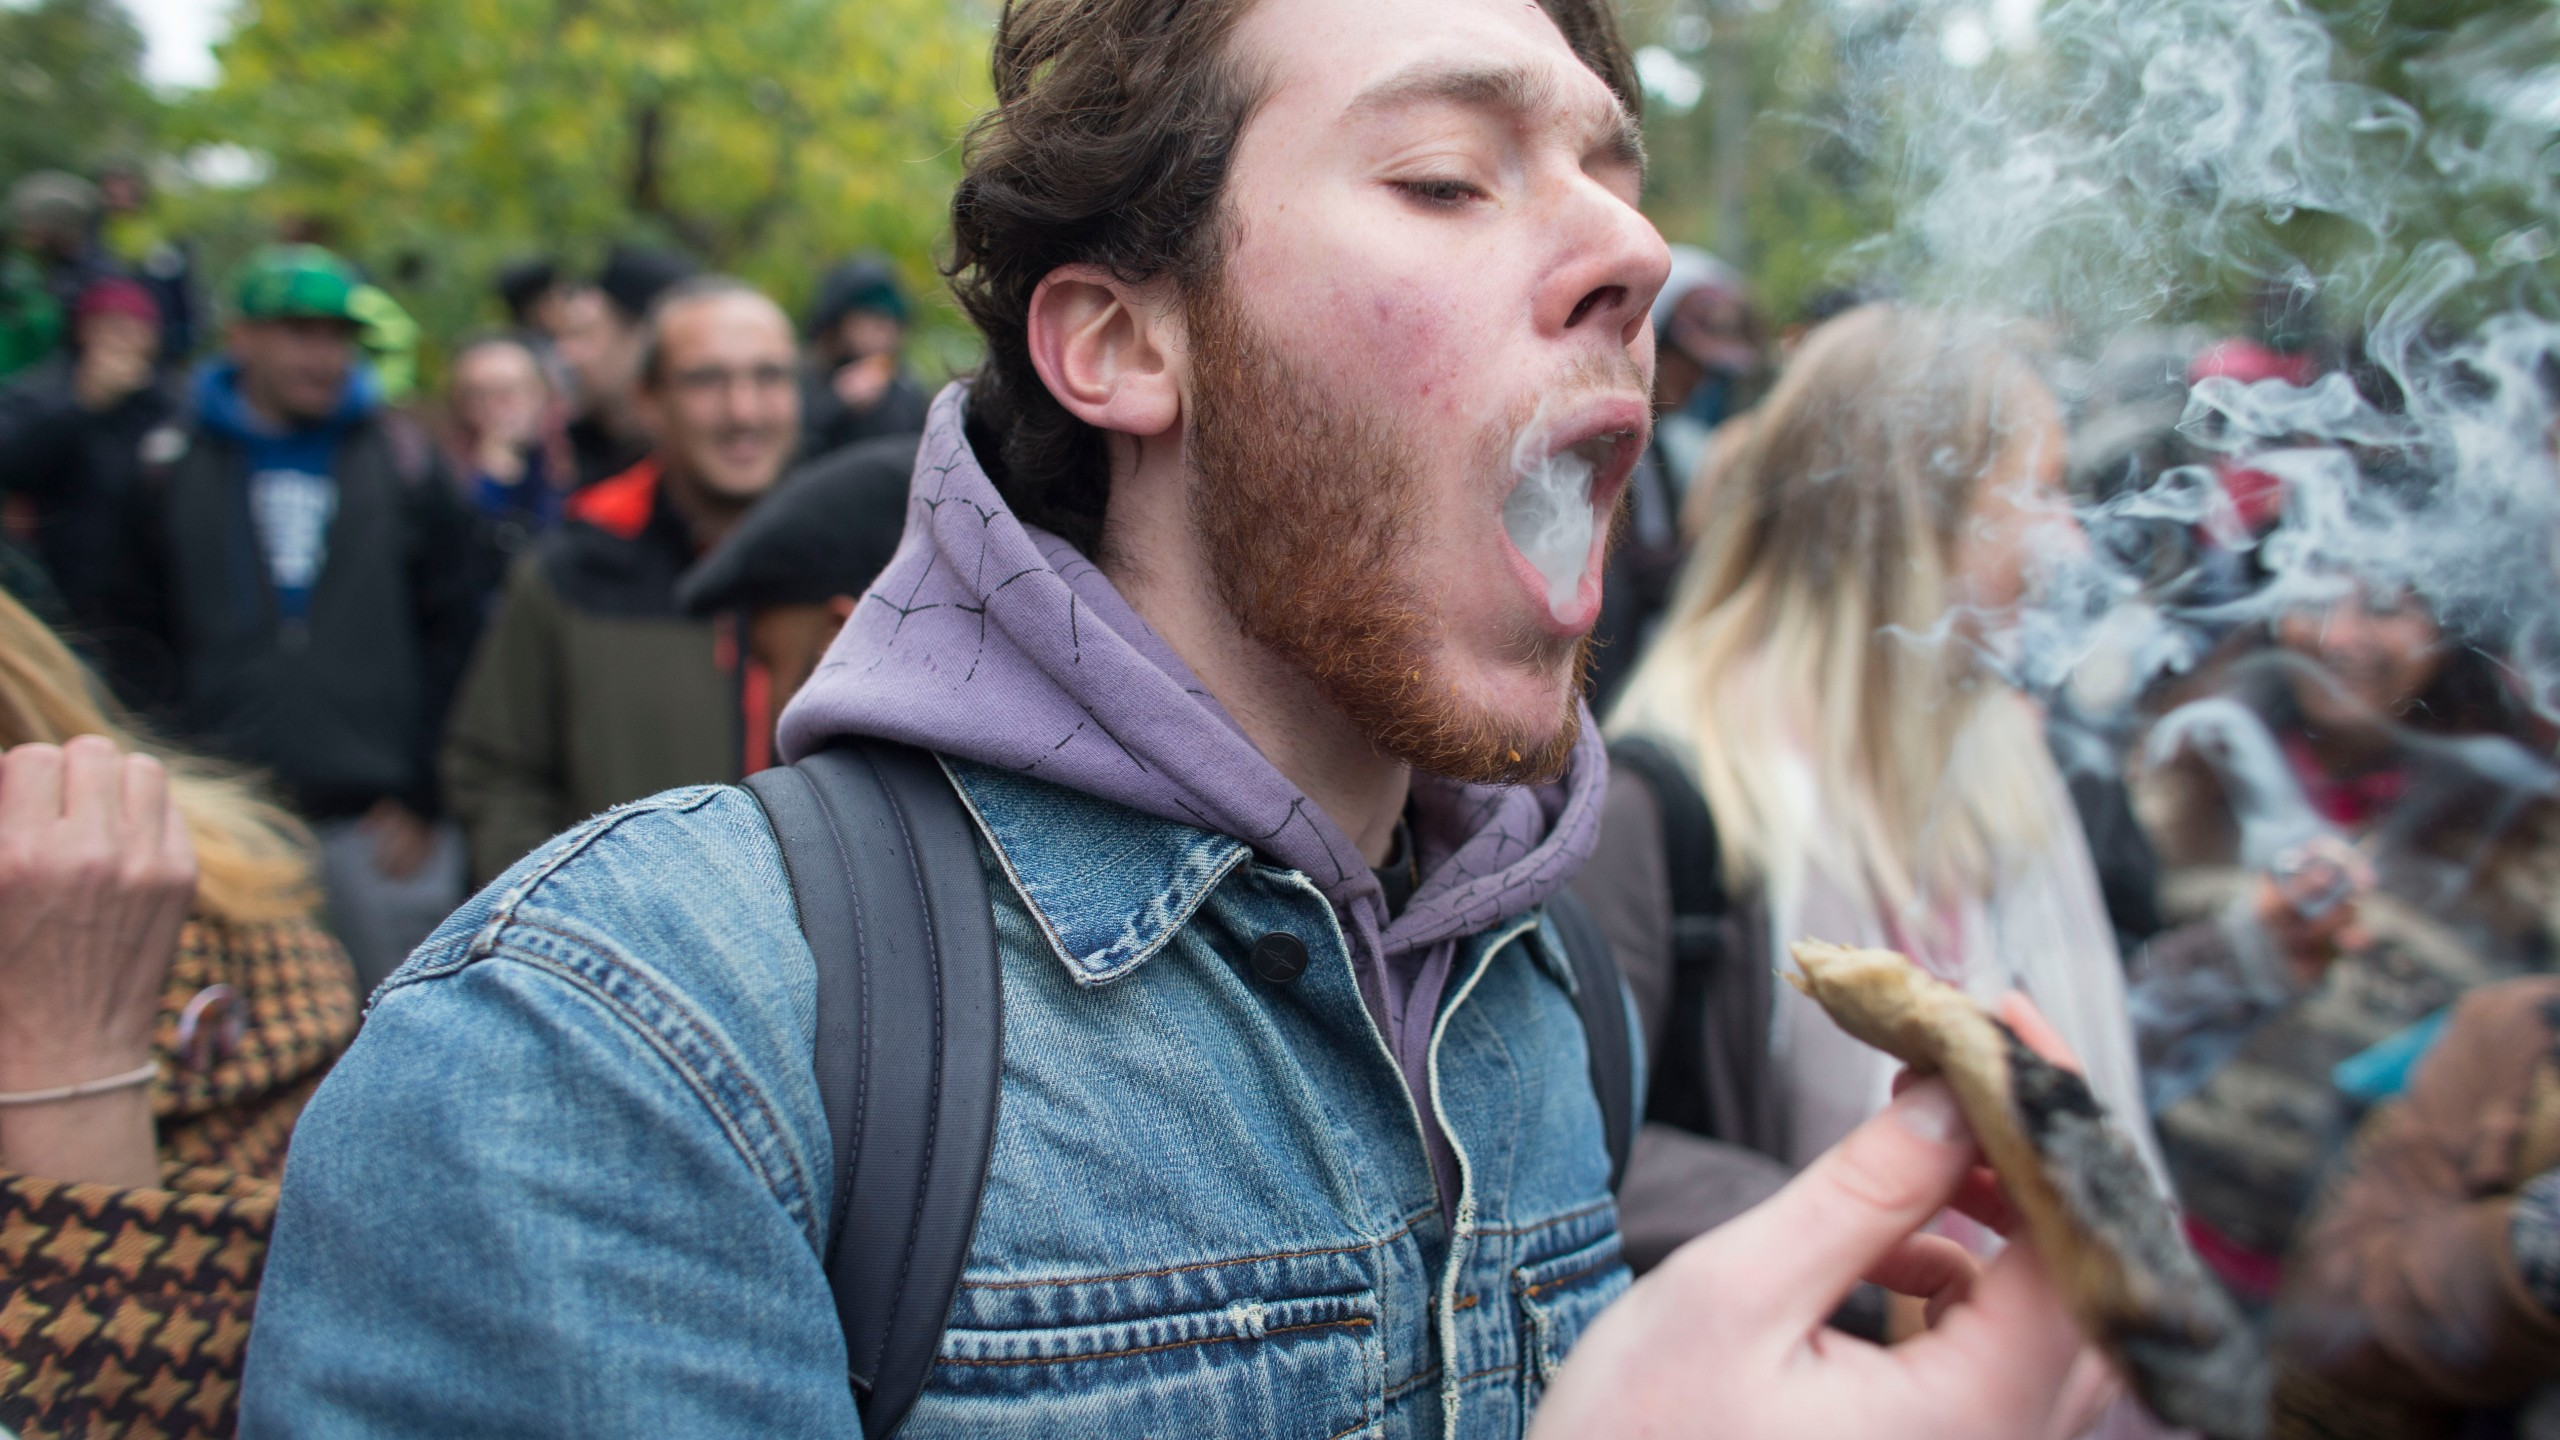 People gather for a marijuana legalization party at Trinity Bellwoods Park in Toronto, Canada, on Oct. 17, 2018. (Credit: Geoff Robins / AFP / Getty Images)